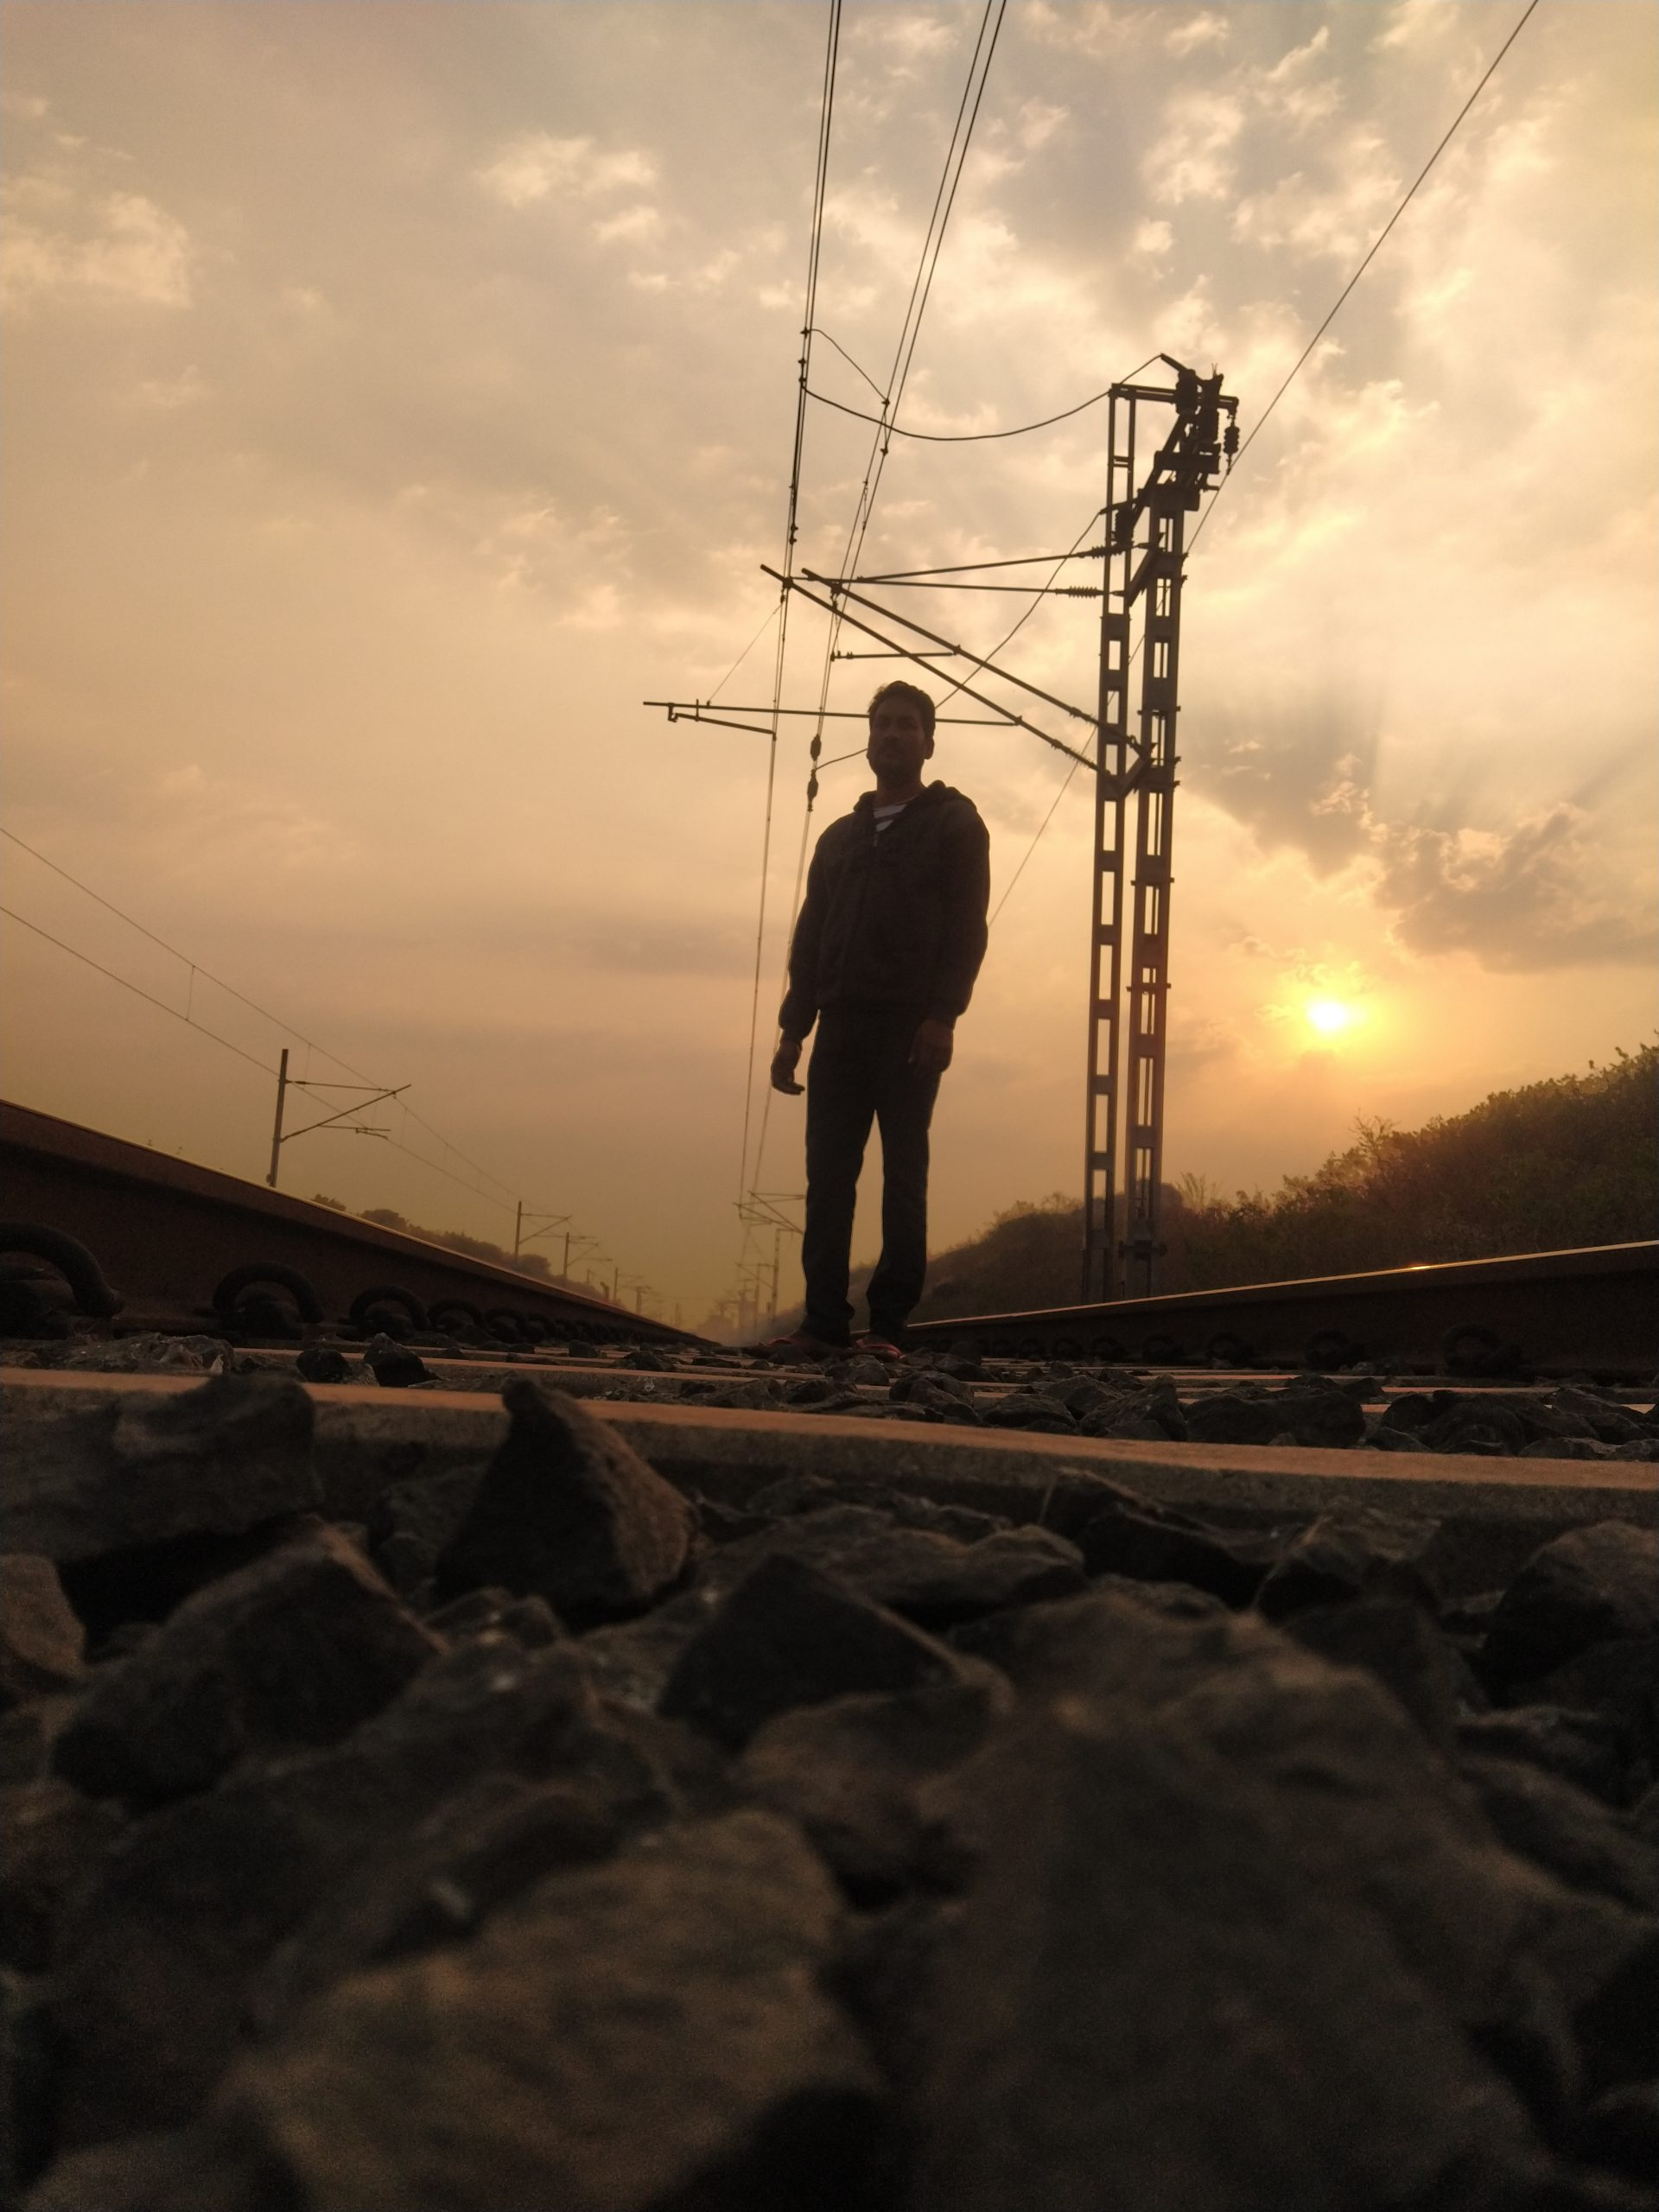 A boy on a railway track